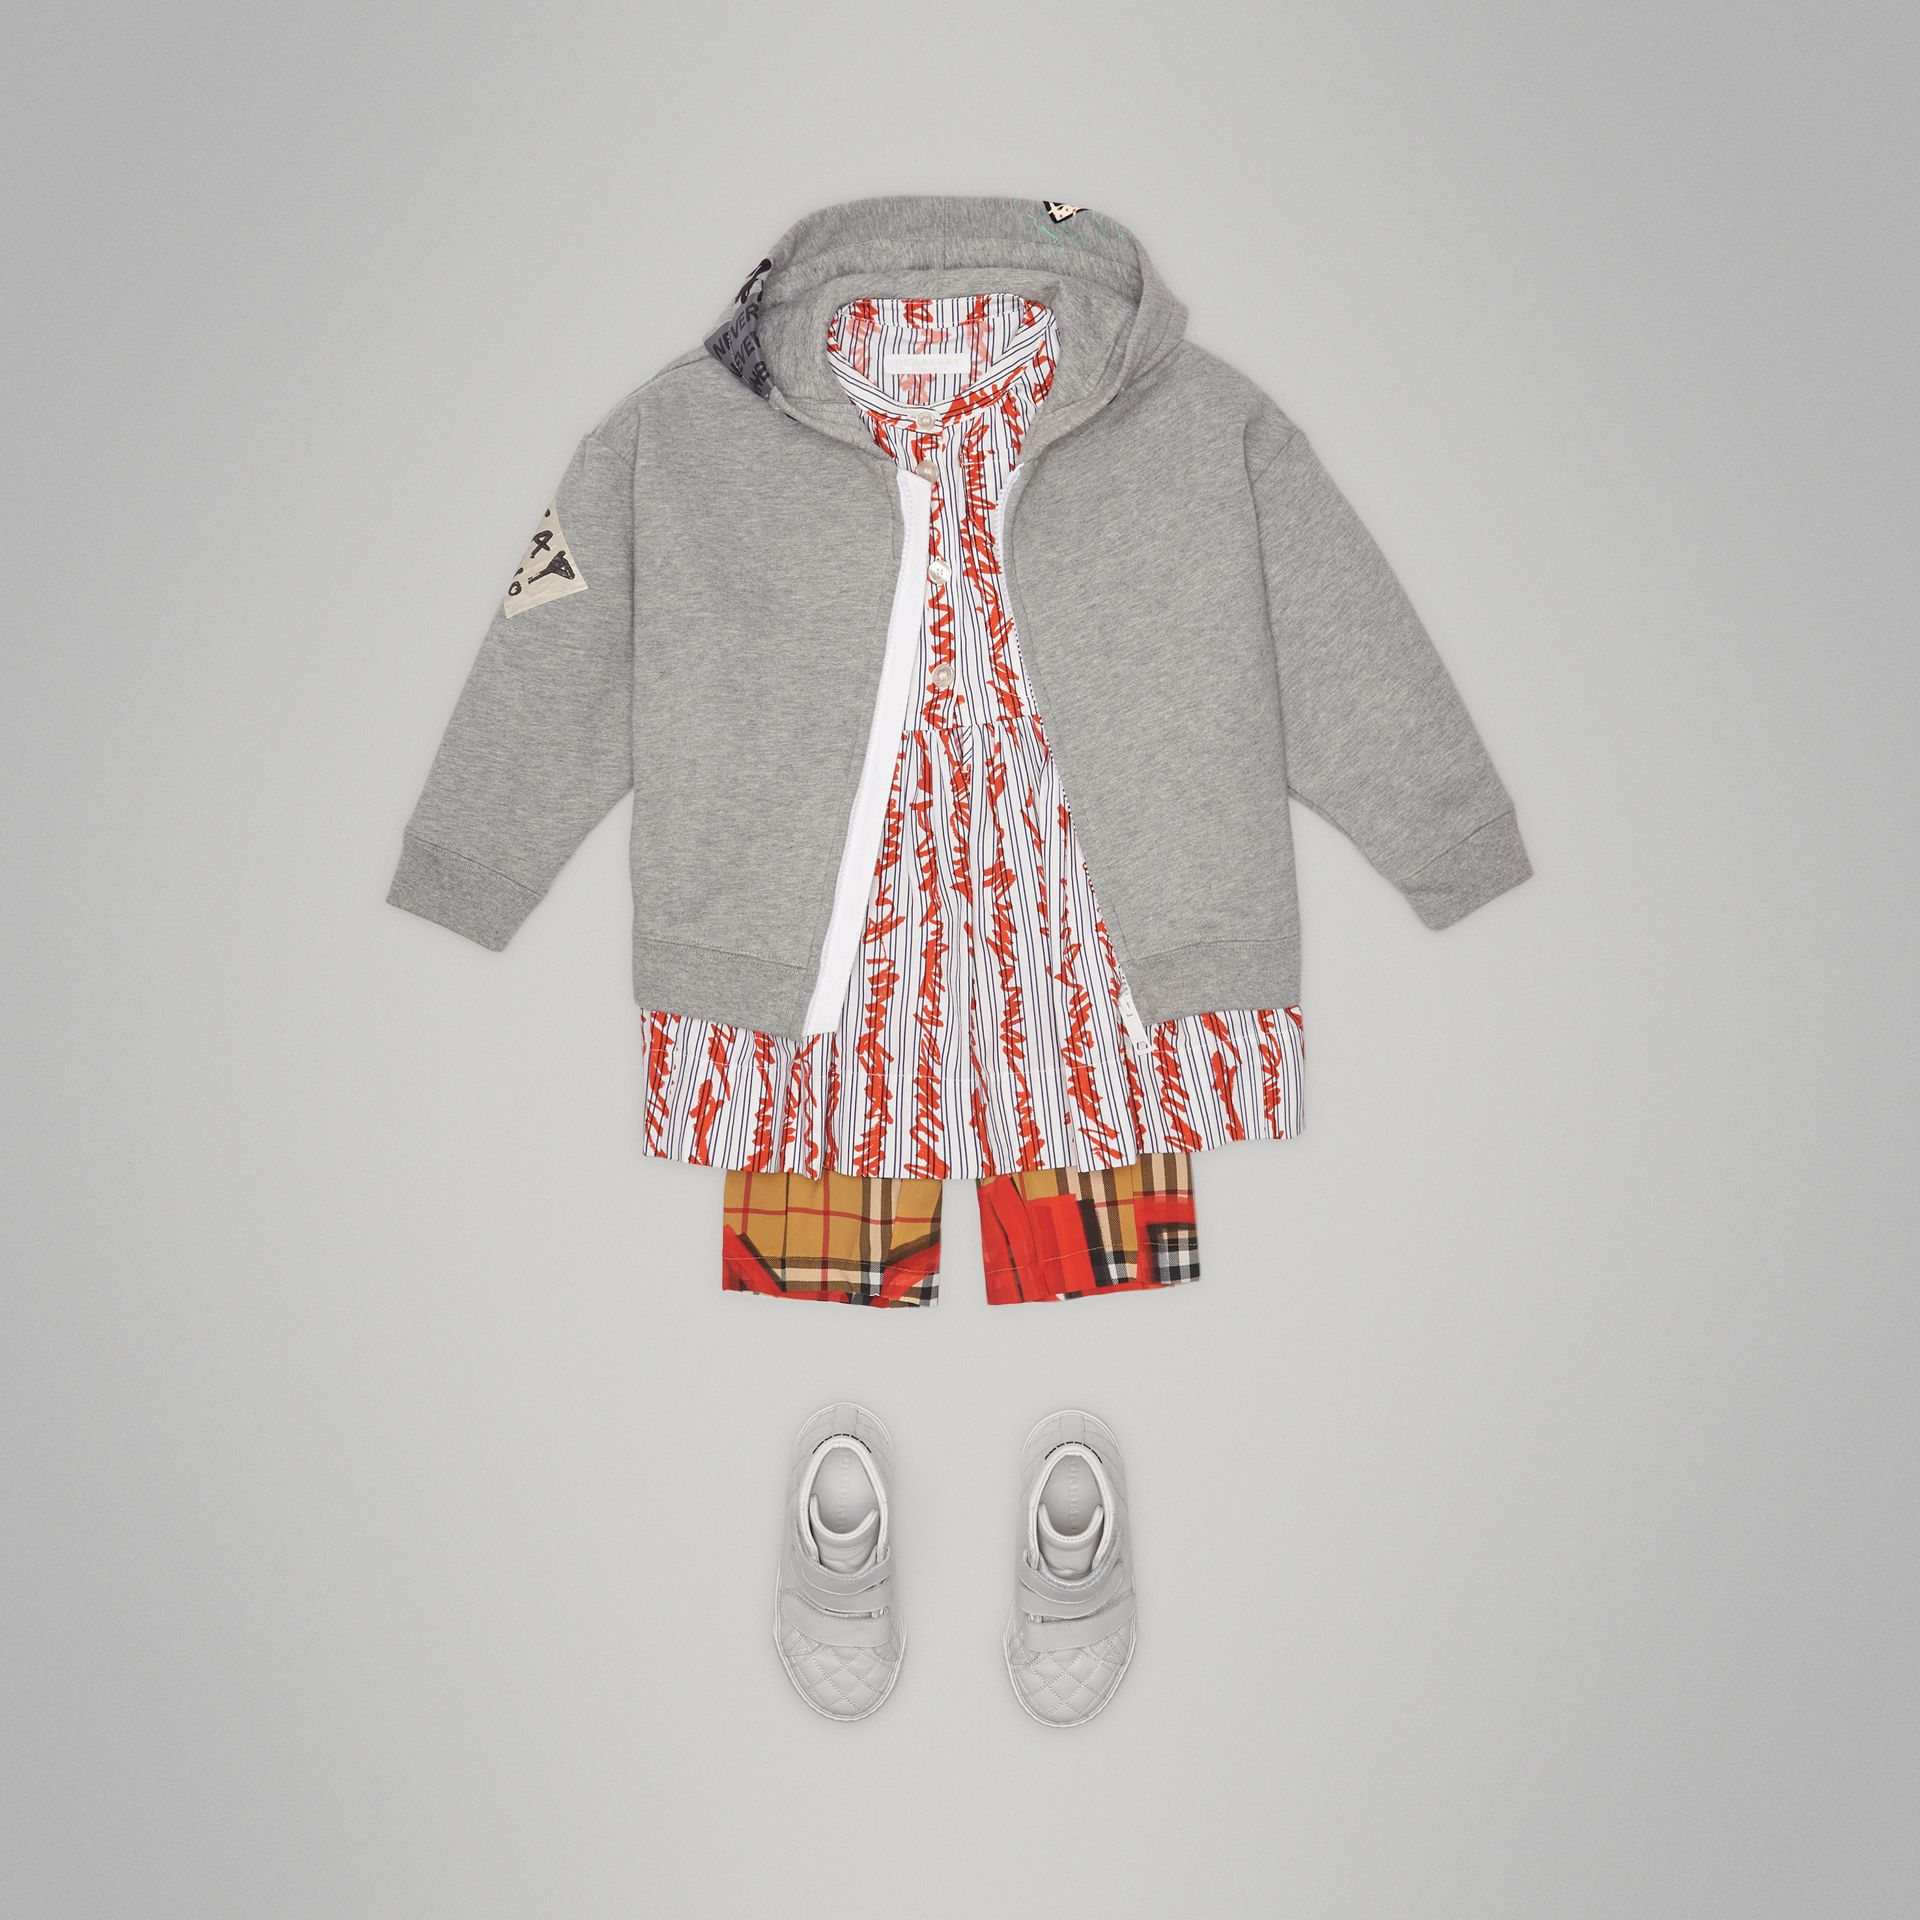 London Street Art Print Cotton Hooded Top in Grey Melange | Burberry - gallery image 2